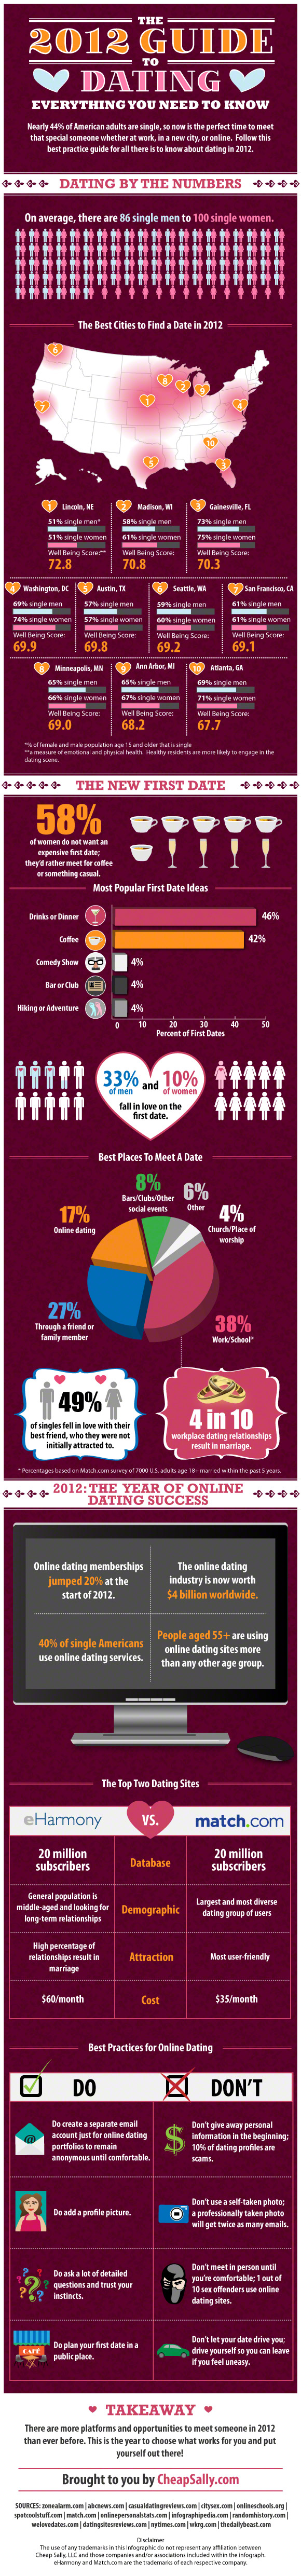 cheap-sally-2012-dating-guide-infographic